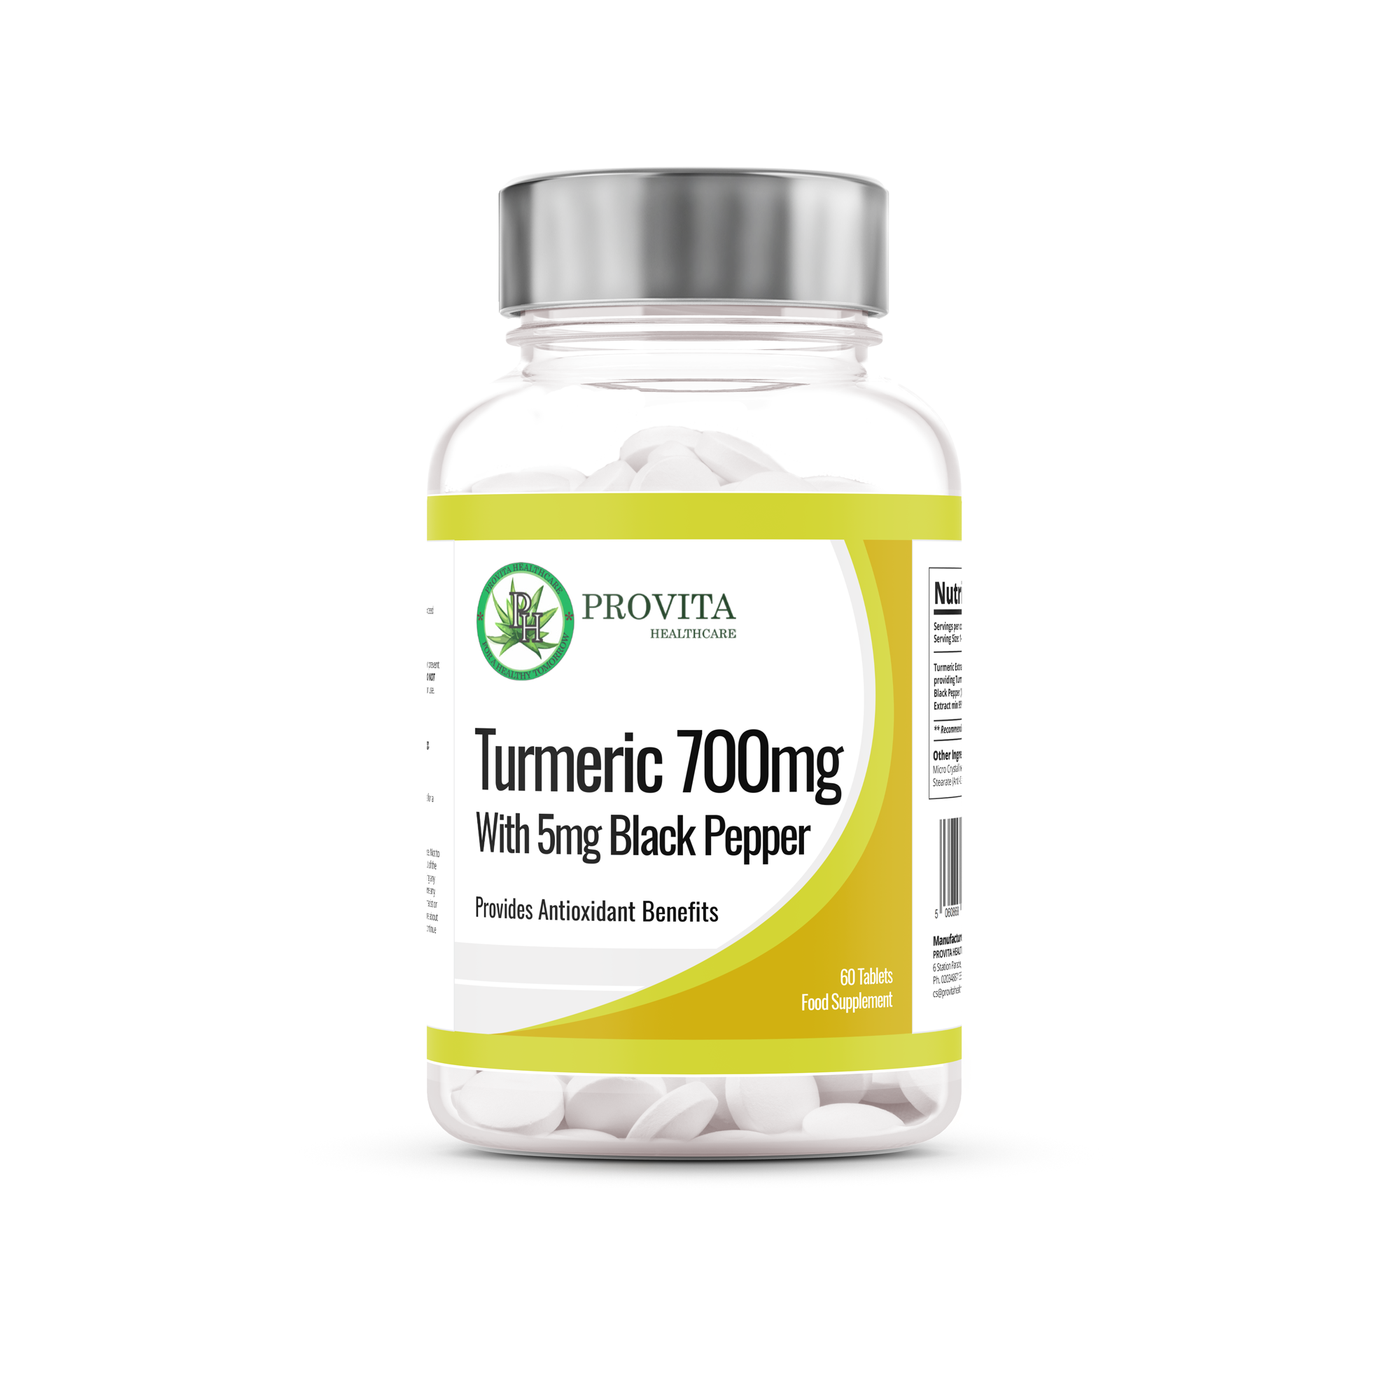 Turmeric 700mg with Black Pepper